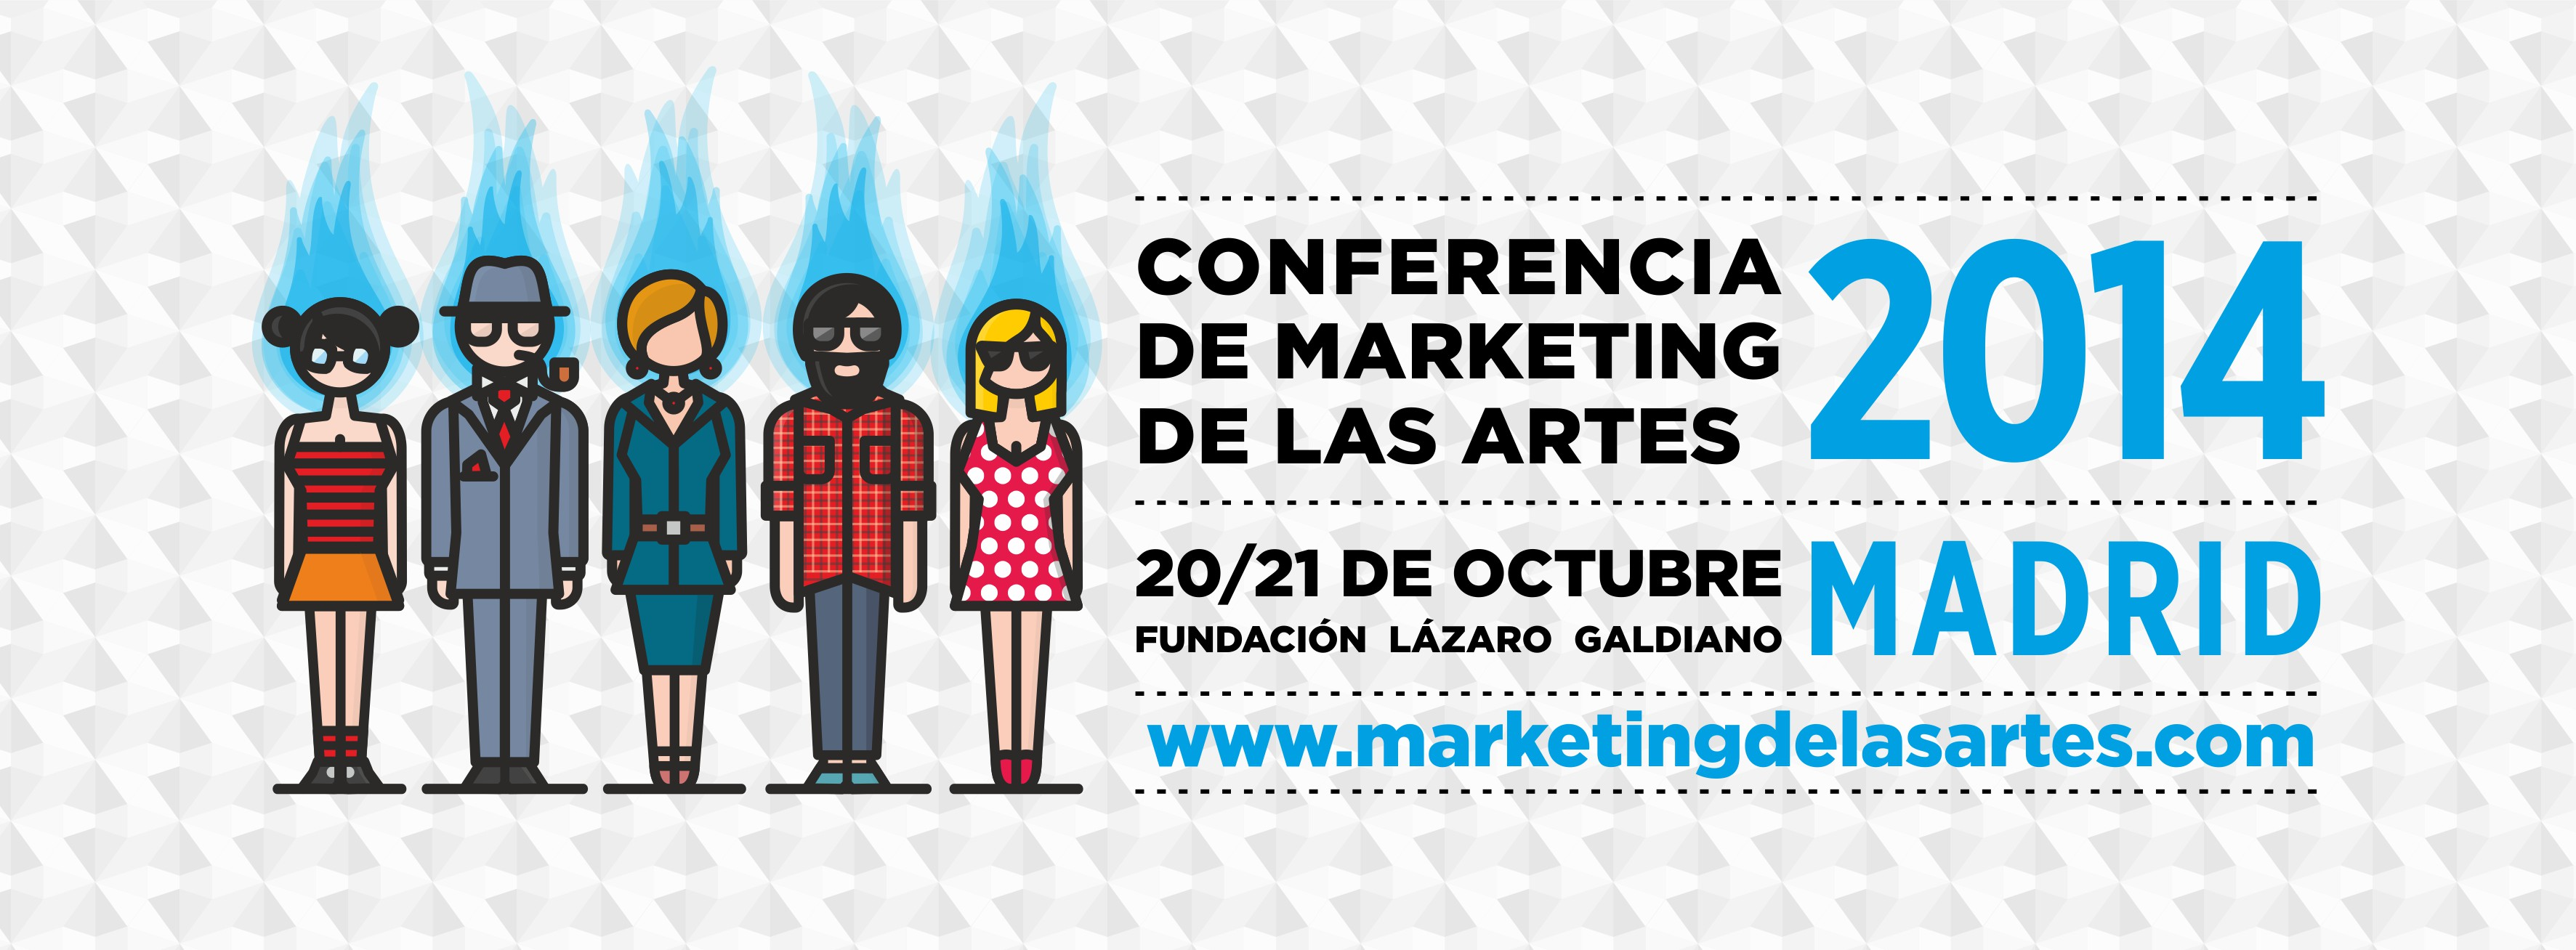 Marketing de Las Artes 2014